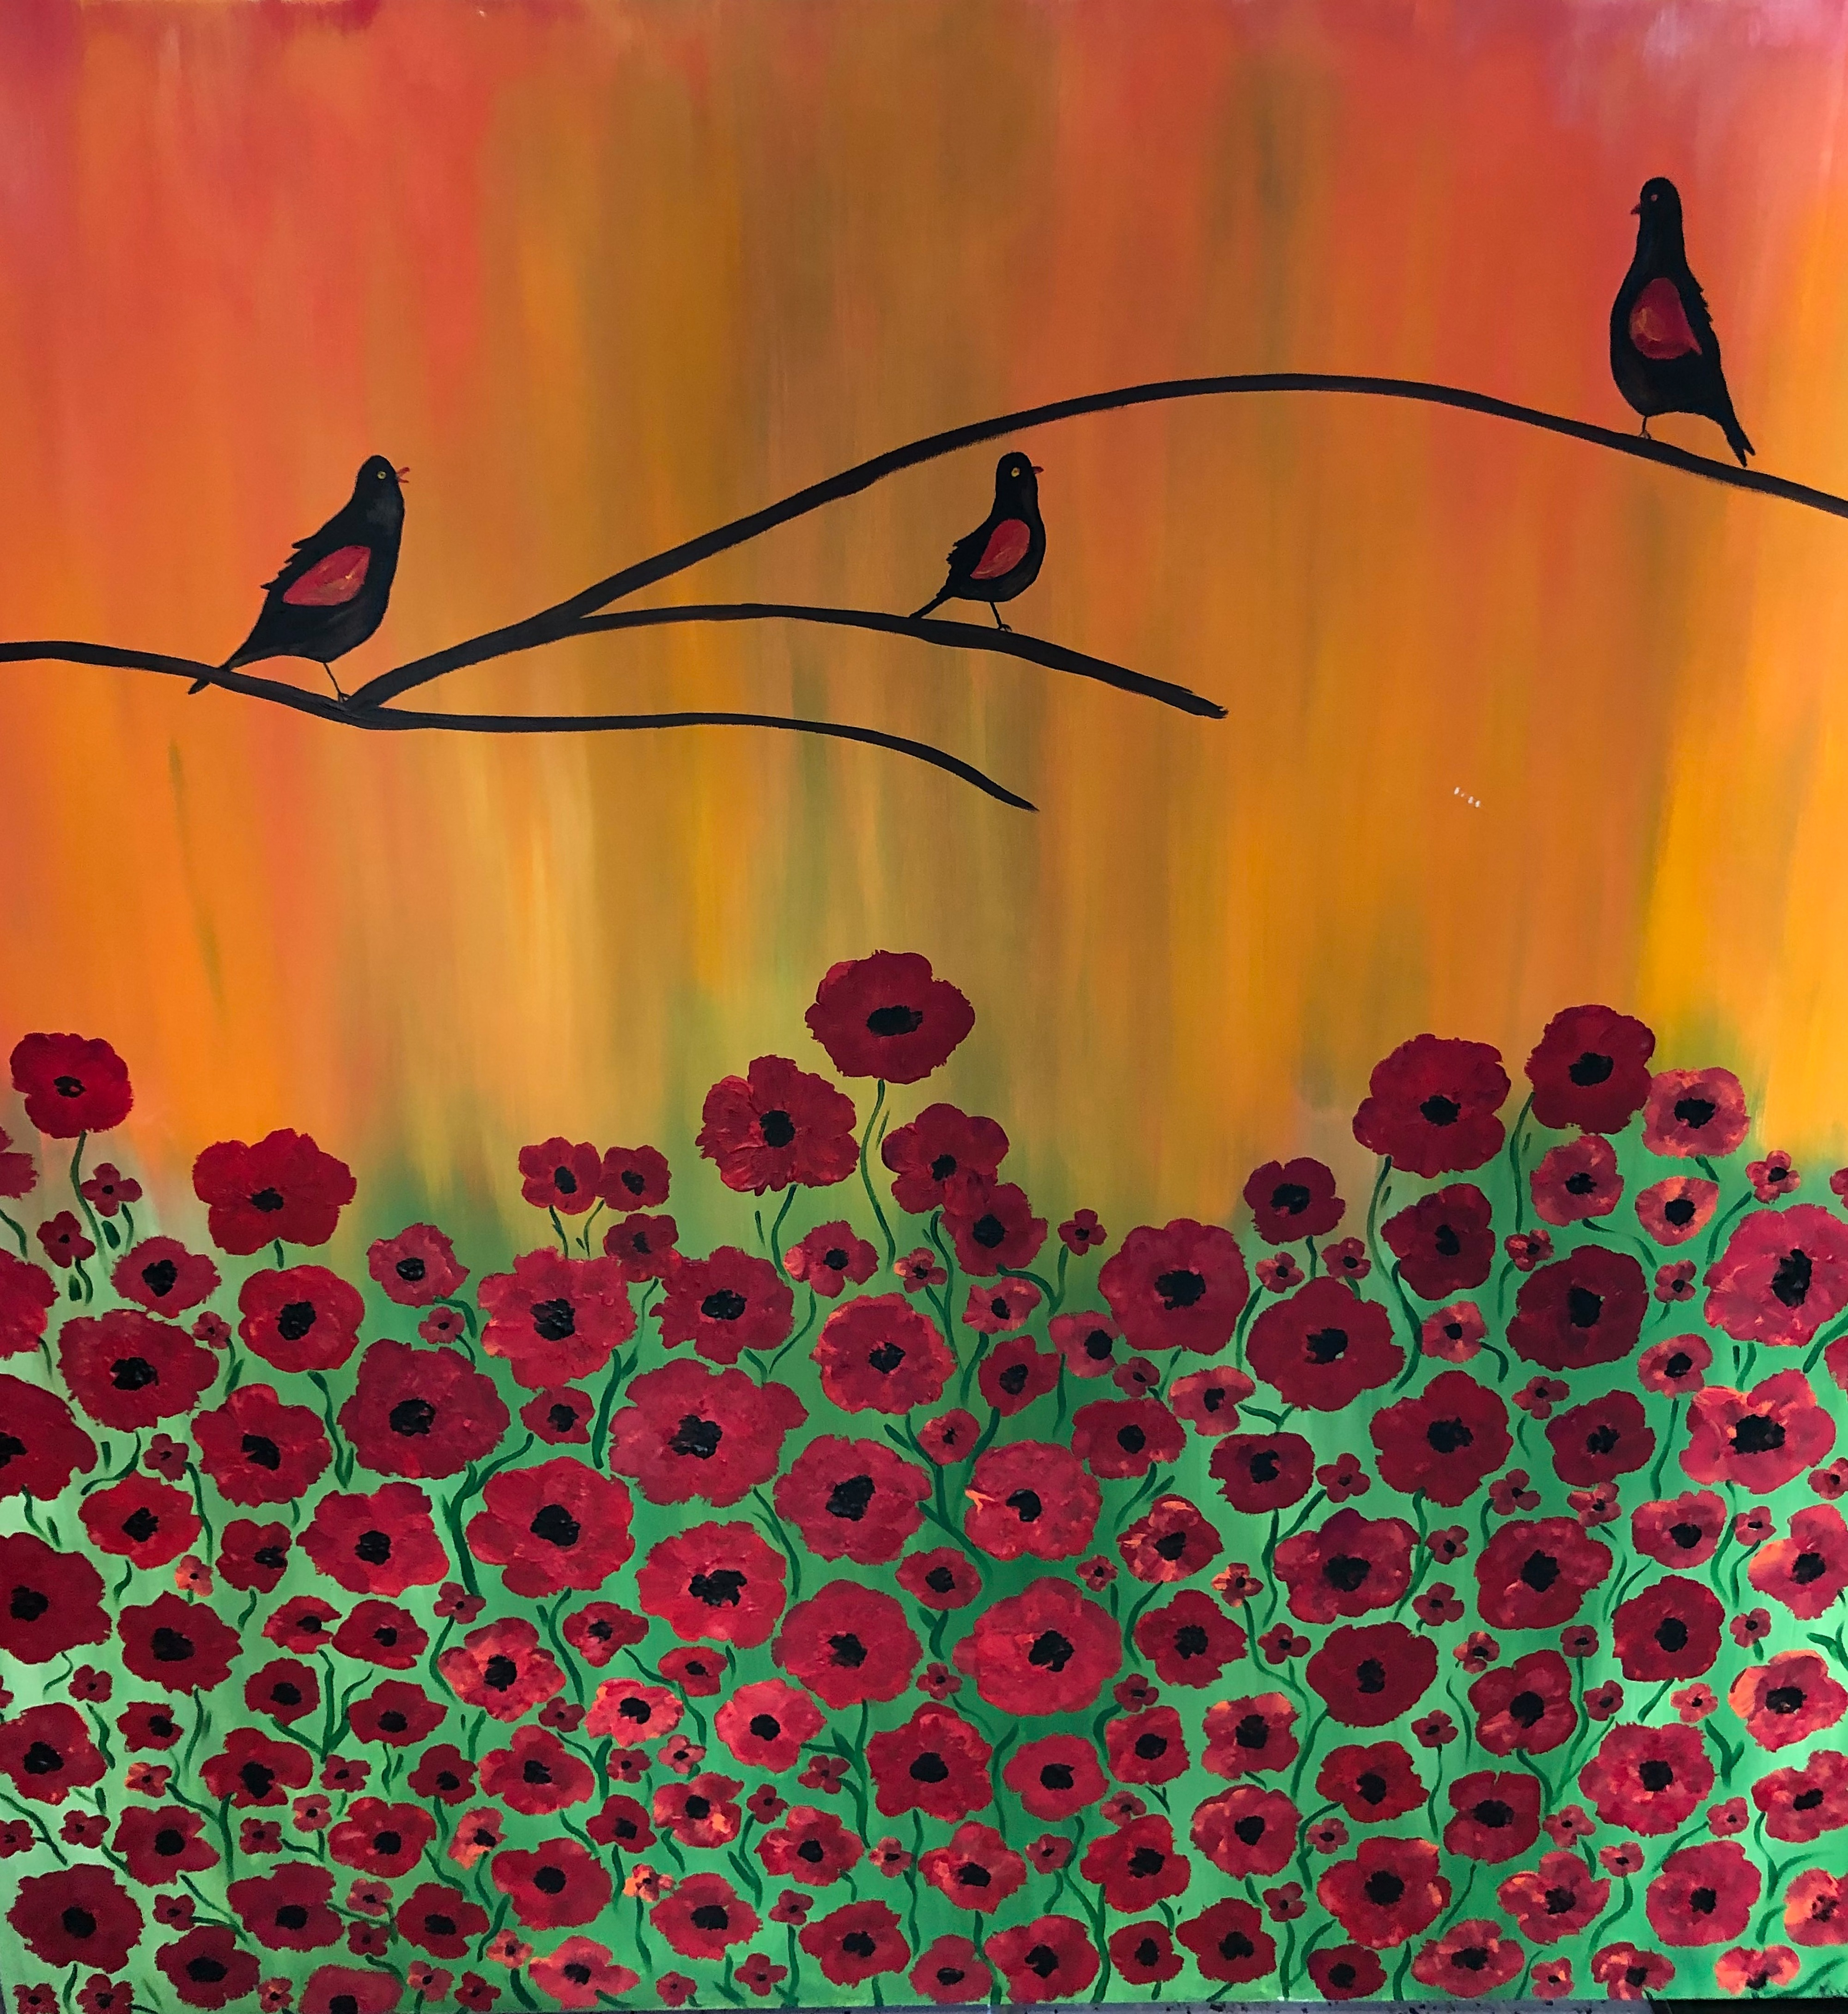 Red Winged Black Birds by Marylin Kitchen | ArtworkNetwork.com